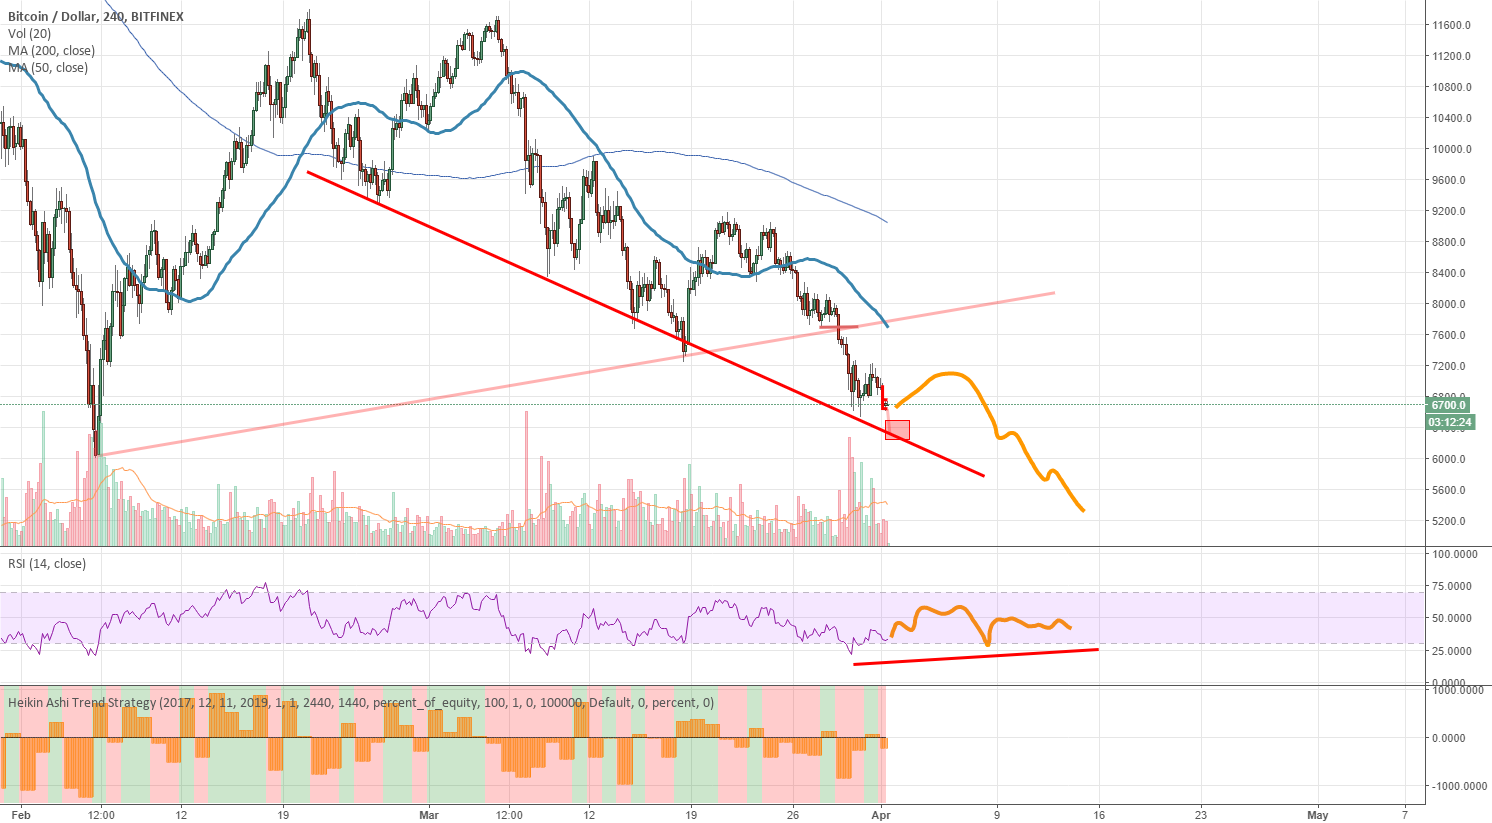 BTC When will the bear market end?